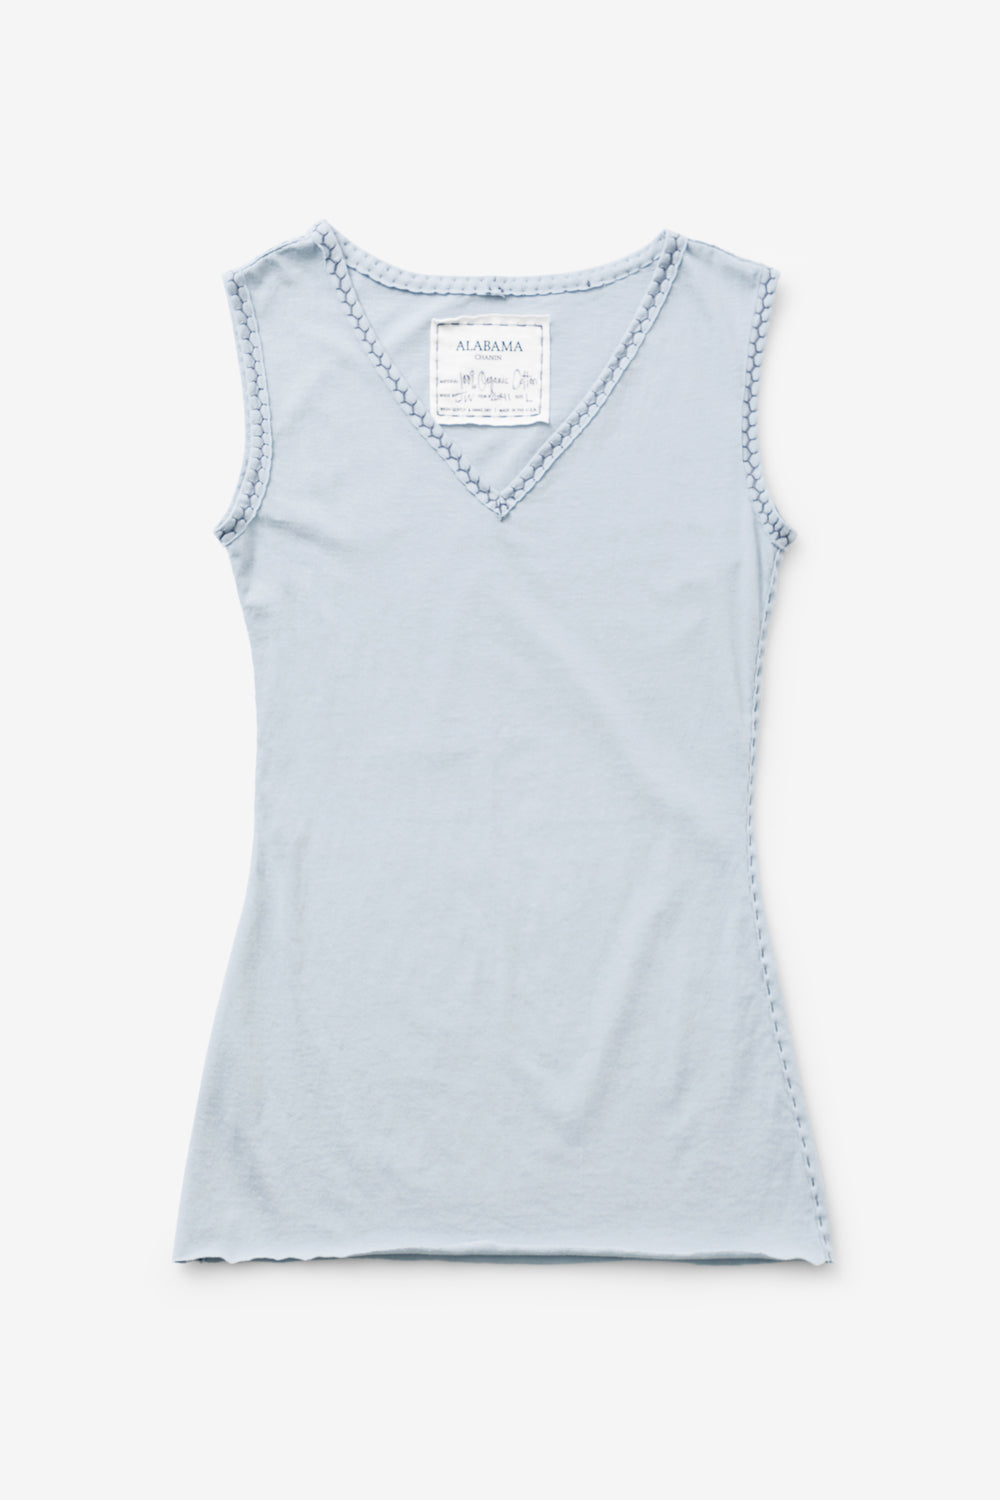 Alabama Chanin 100% Organic Cotton Top with V-Neck in Light Blue